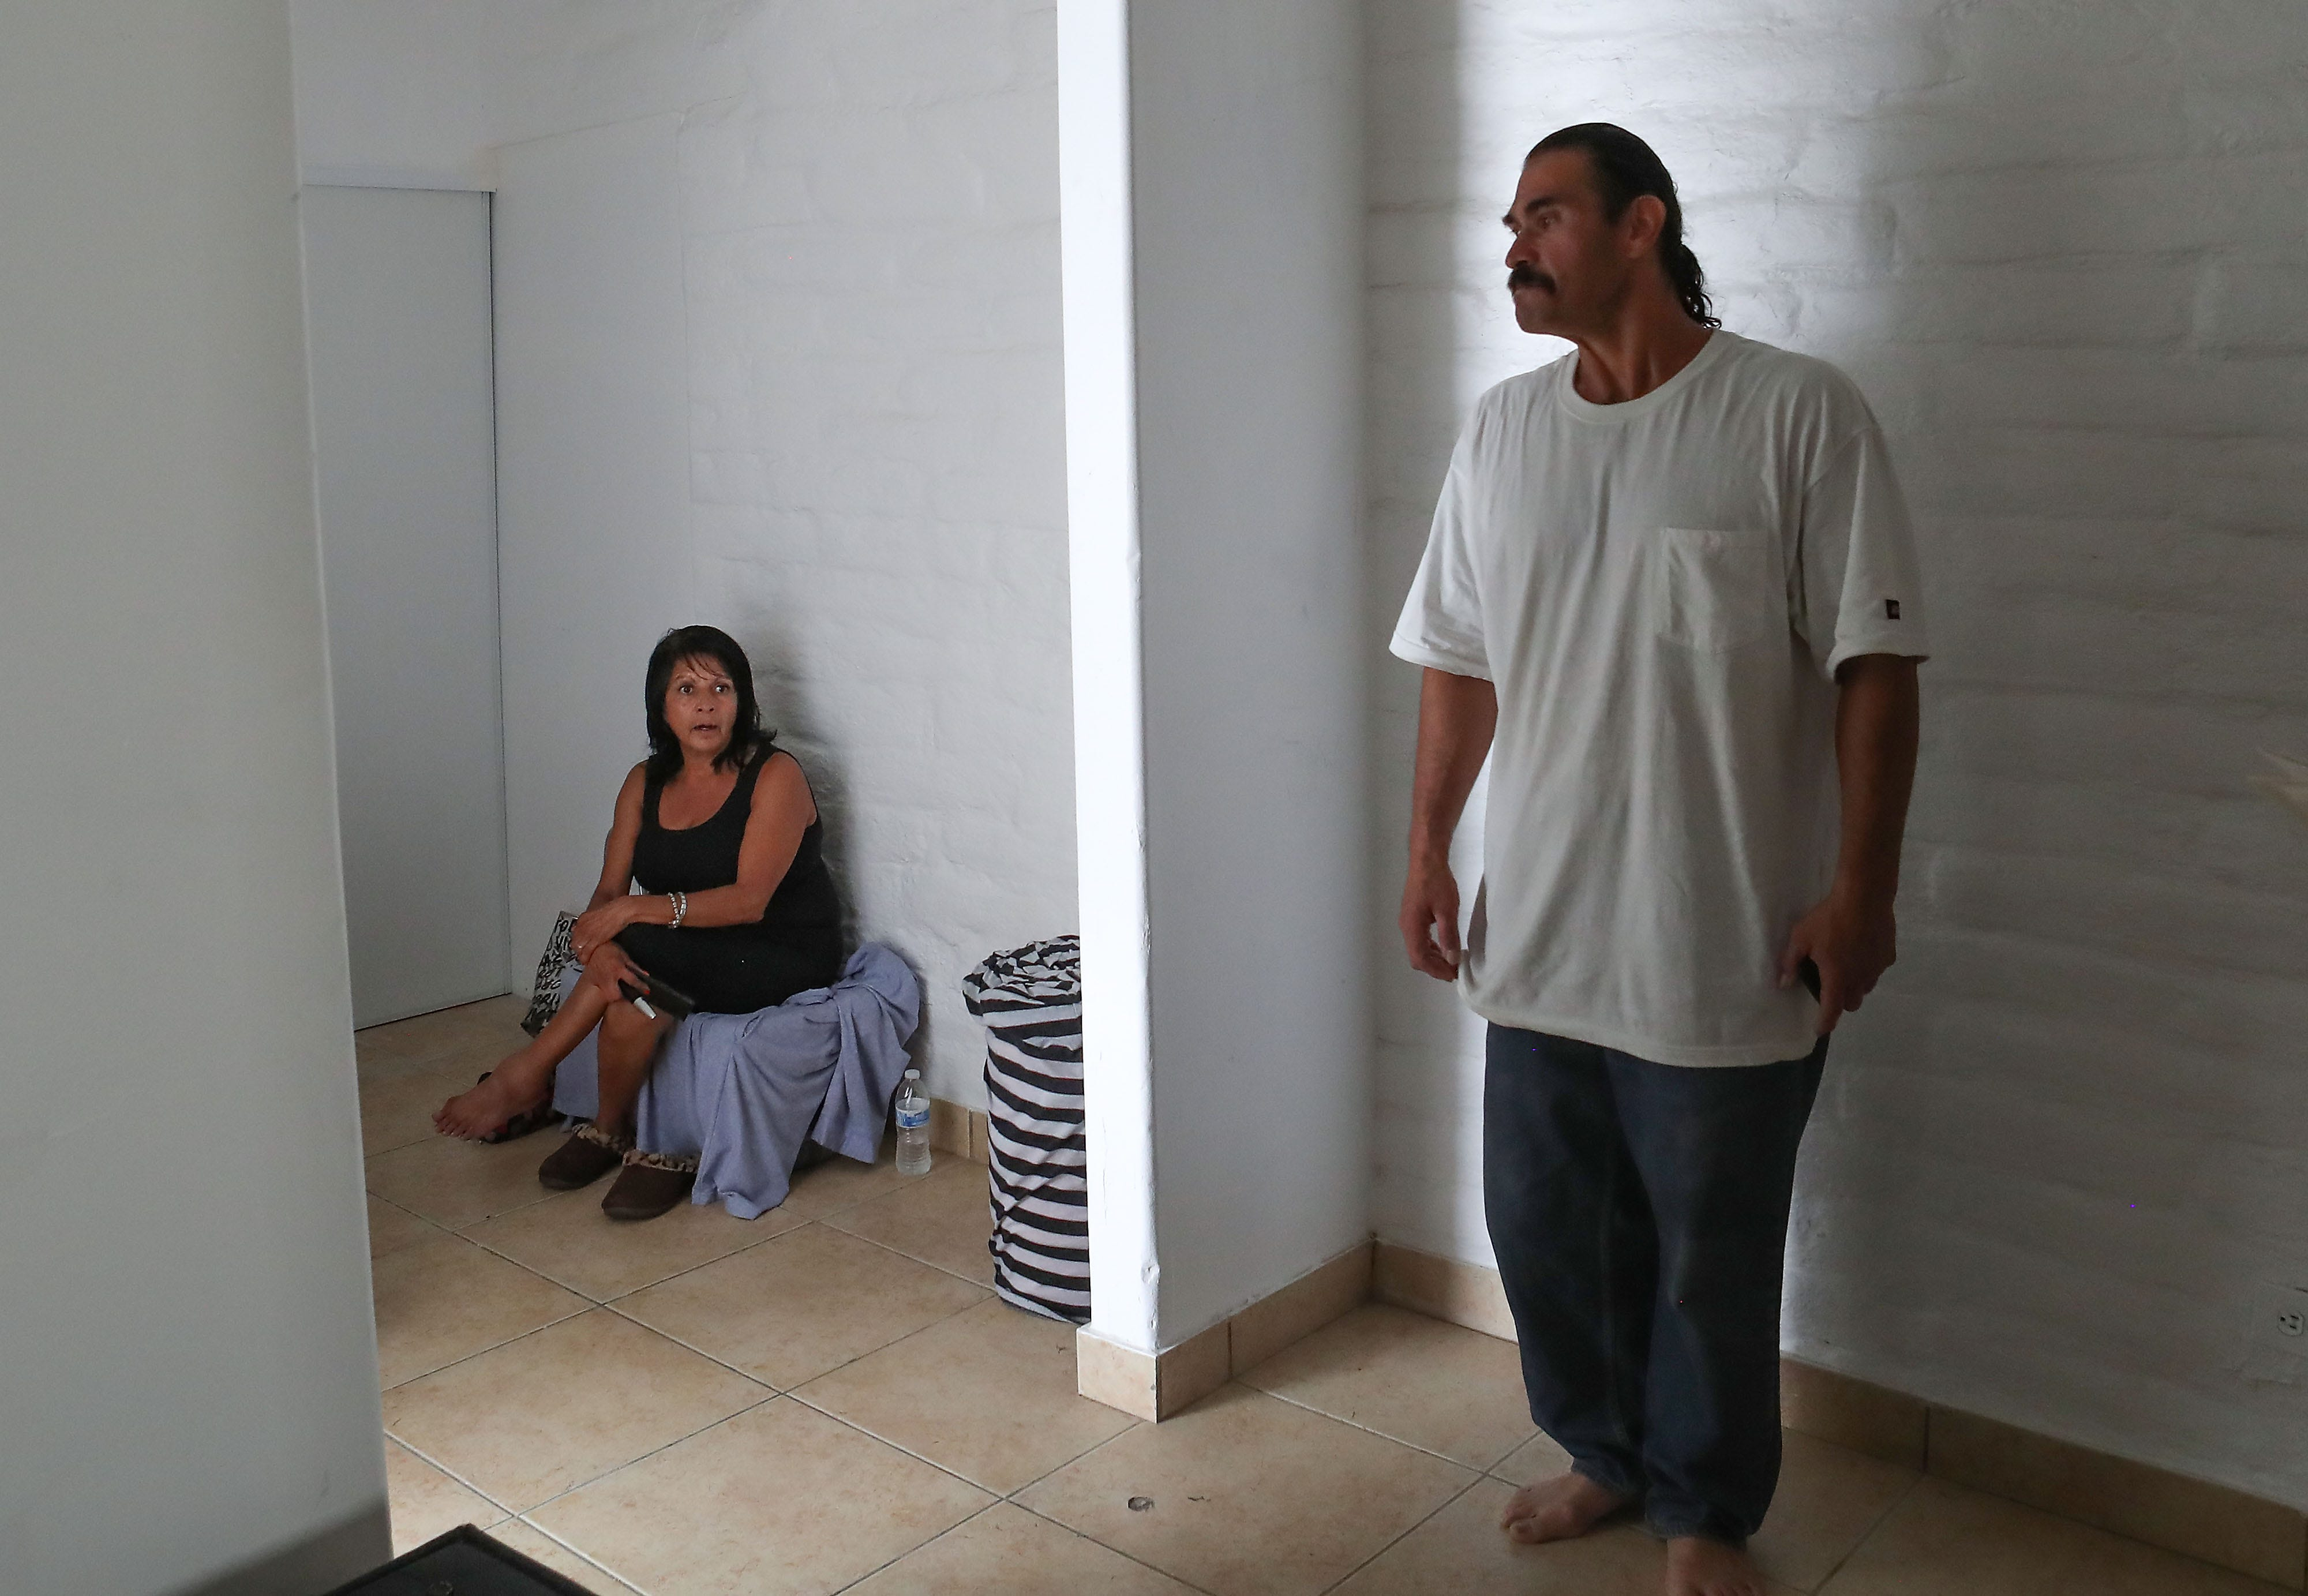 Angie Puerta and her boyfriend Robert didn't have a working stove or swamp cooler when they first moved in to their Desert Hot Springs apartment. Pictured in June 2016.